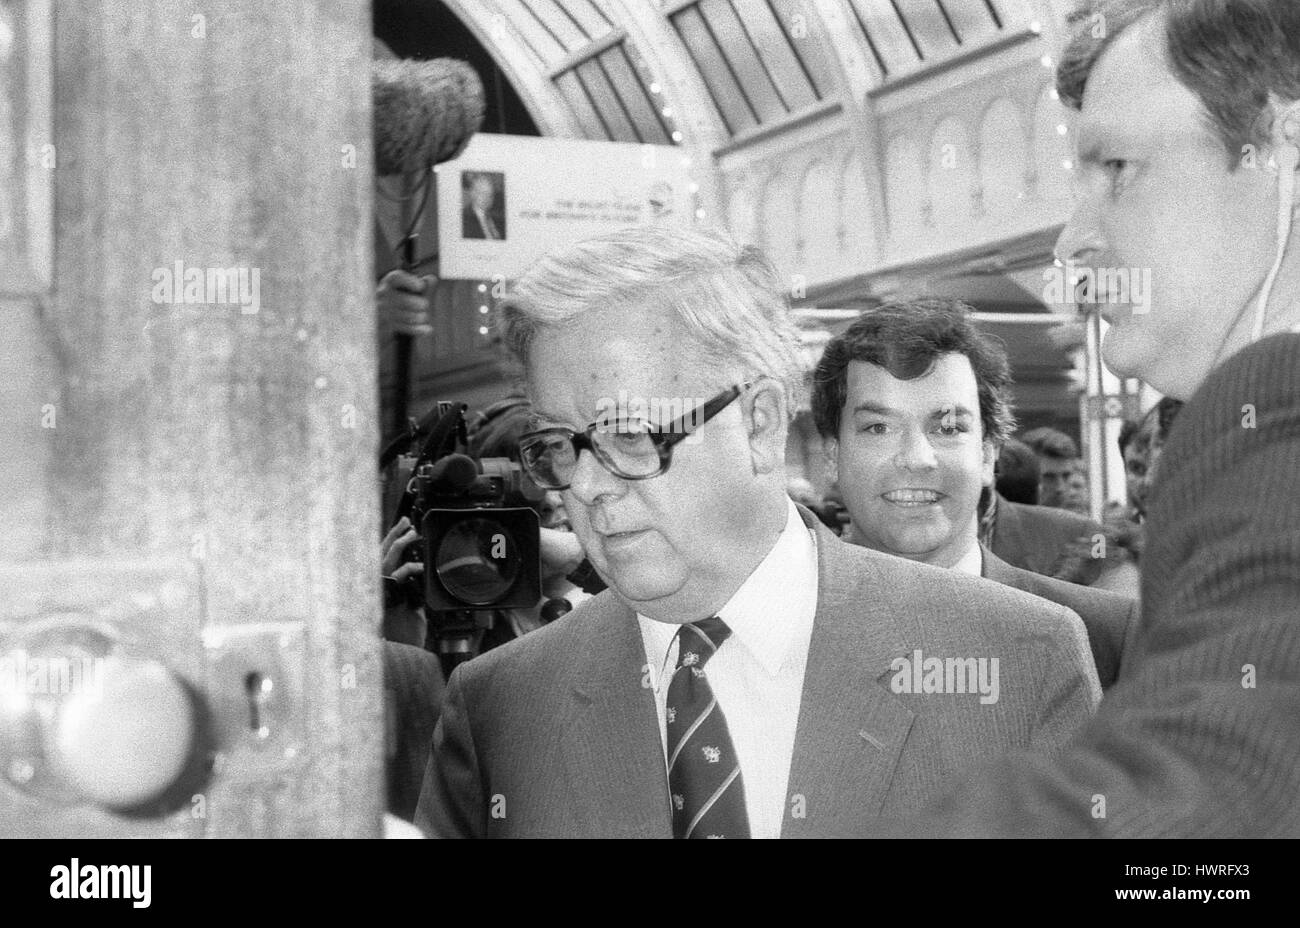 Rt. Hon. Sir Geoffrey Howe, Leader of the House of Commons and Conservative party Member of Parliament for Reigate, - Stock Image